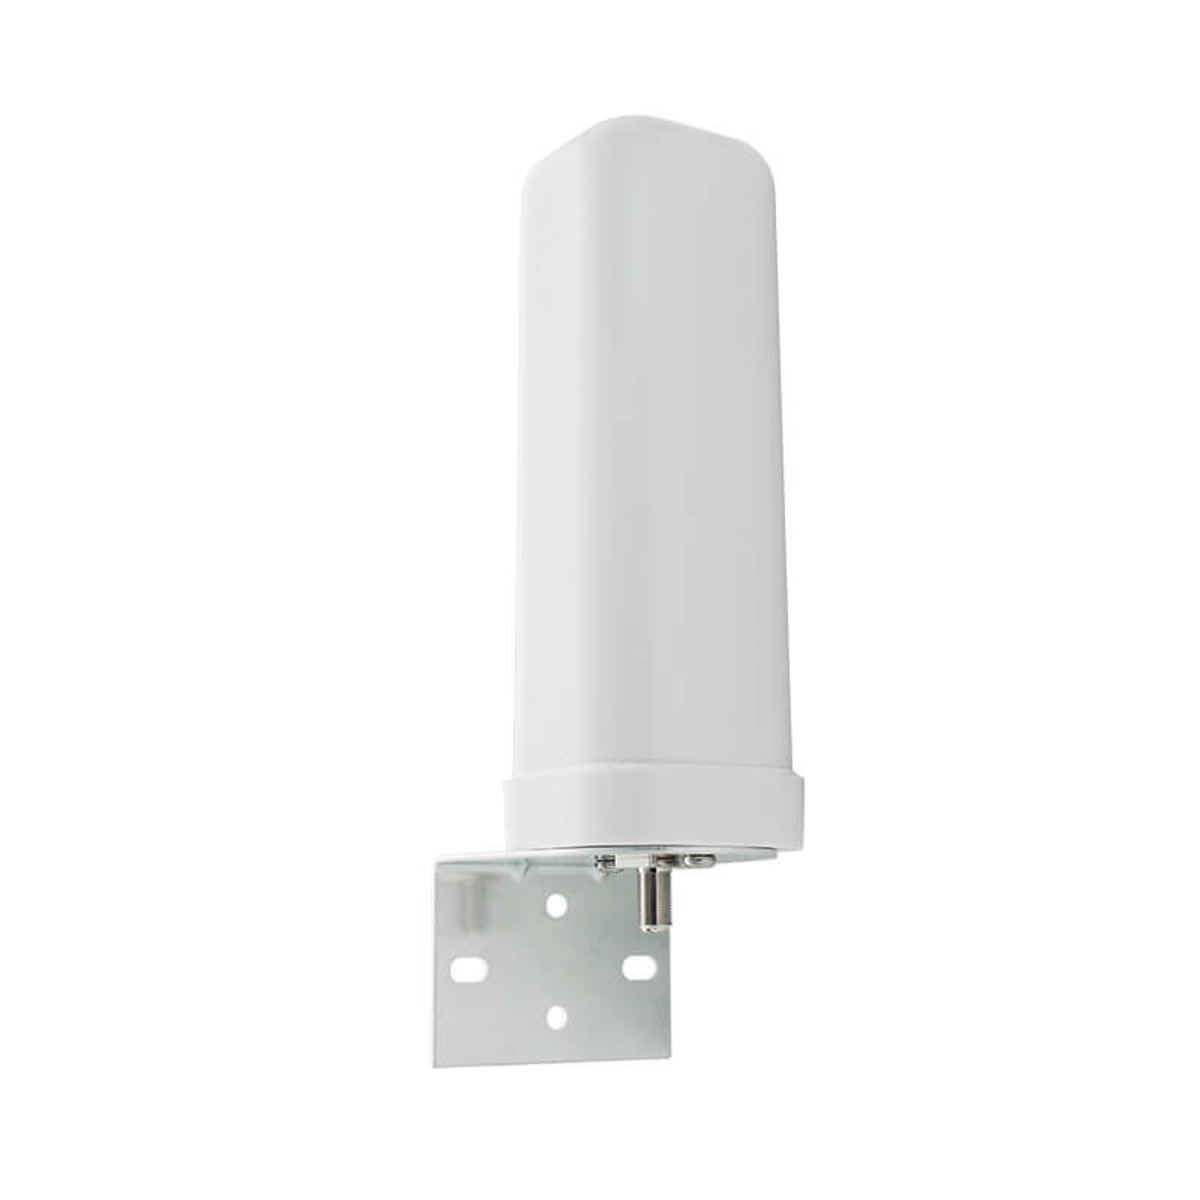 weBoost Drive 4G-X RV Cell Phone Booster Kit | 4G Omni Antenna